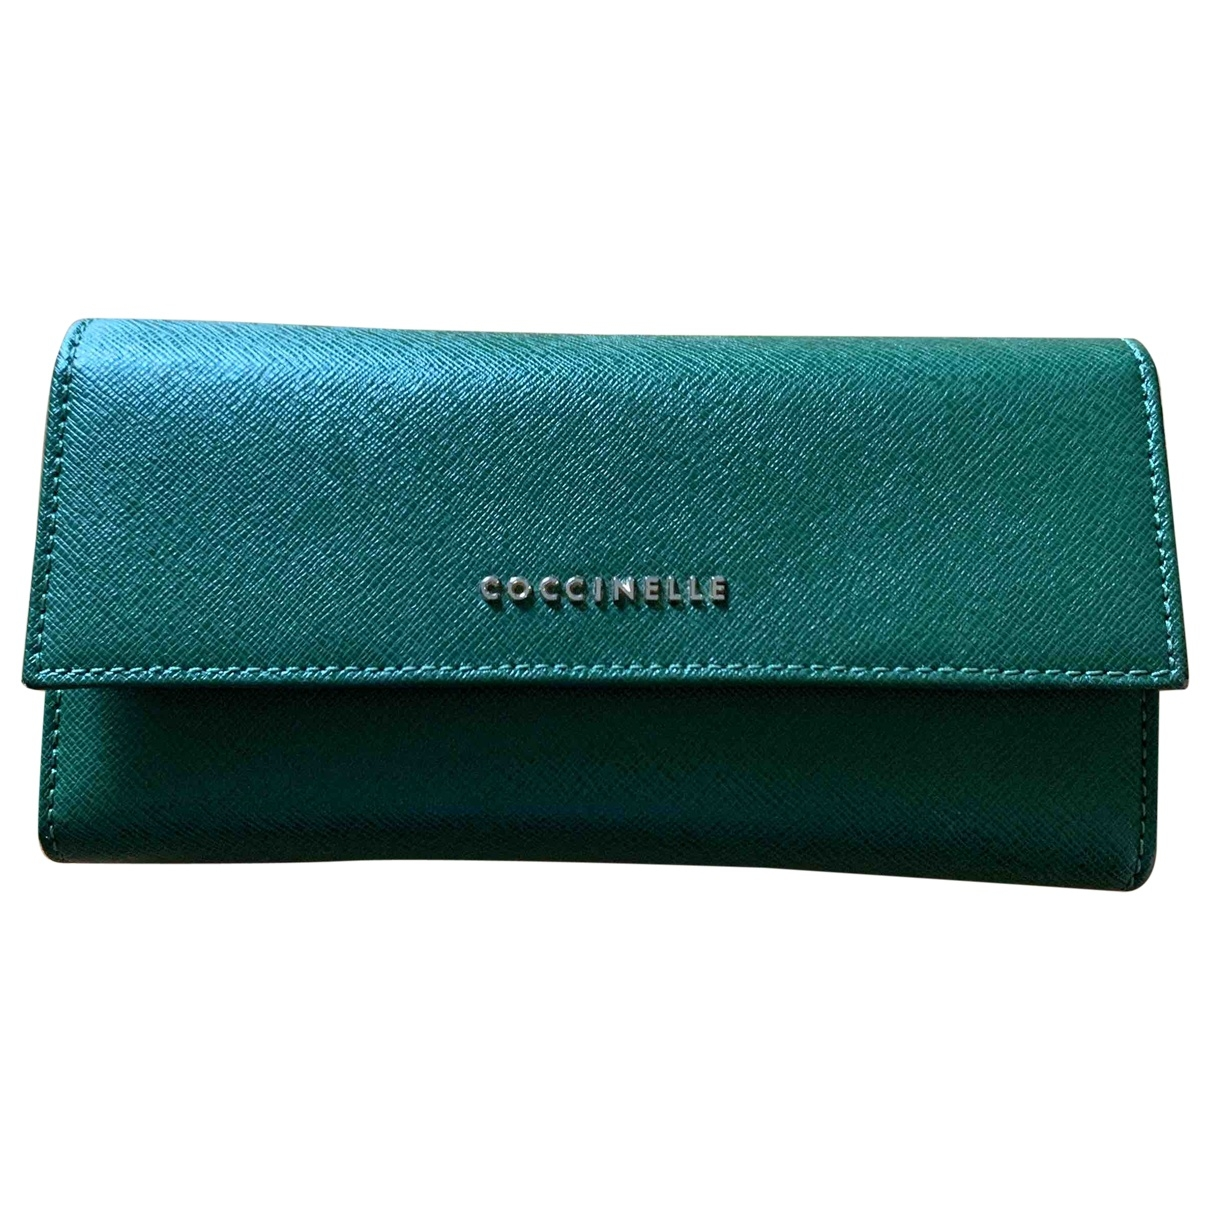 Coccinelle \N Green Leather wallet for Women \N